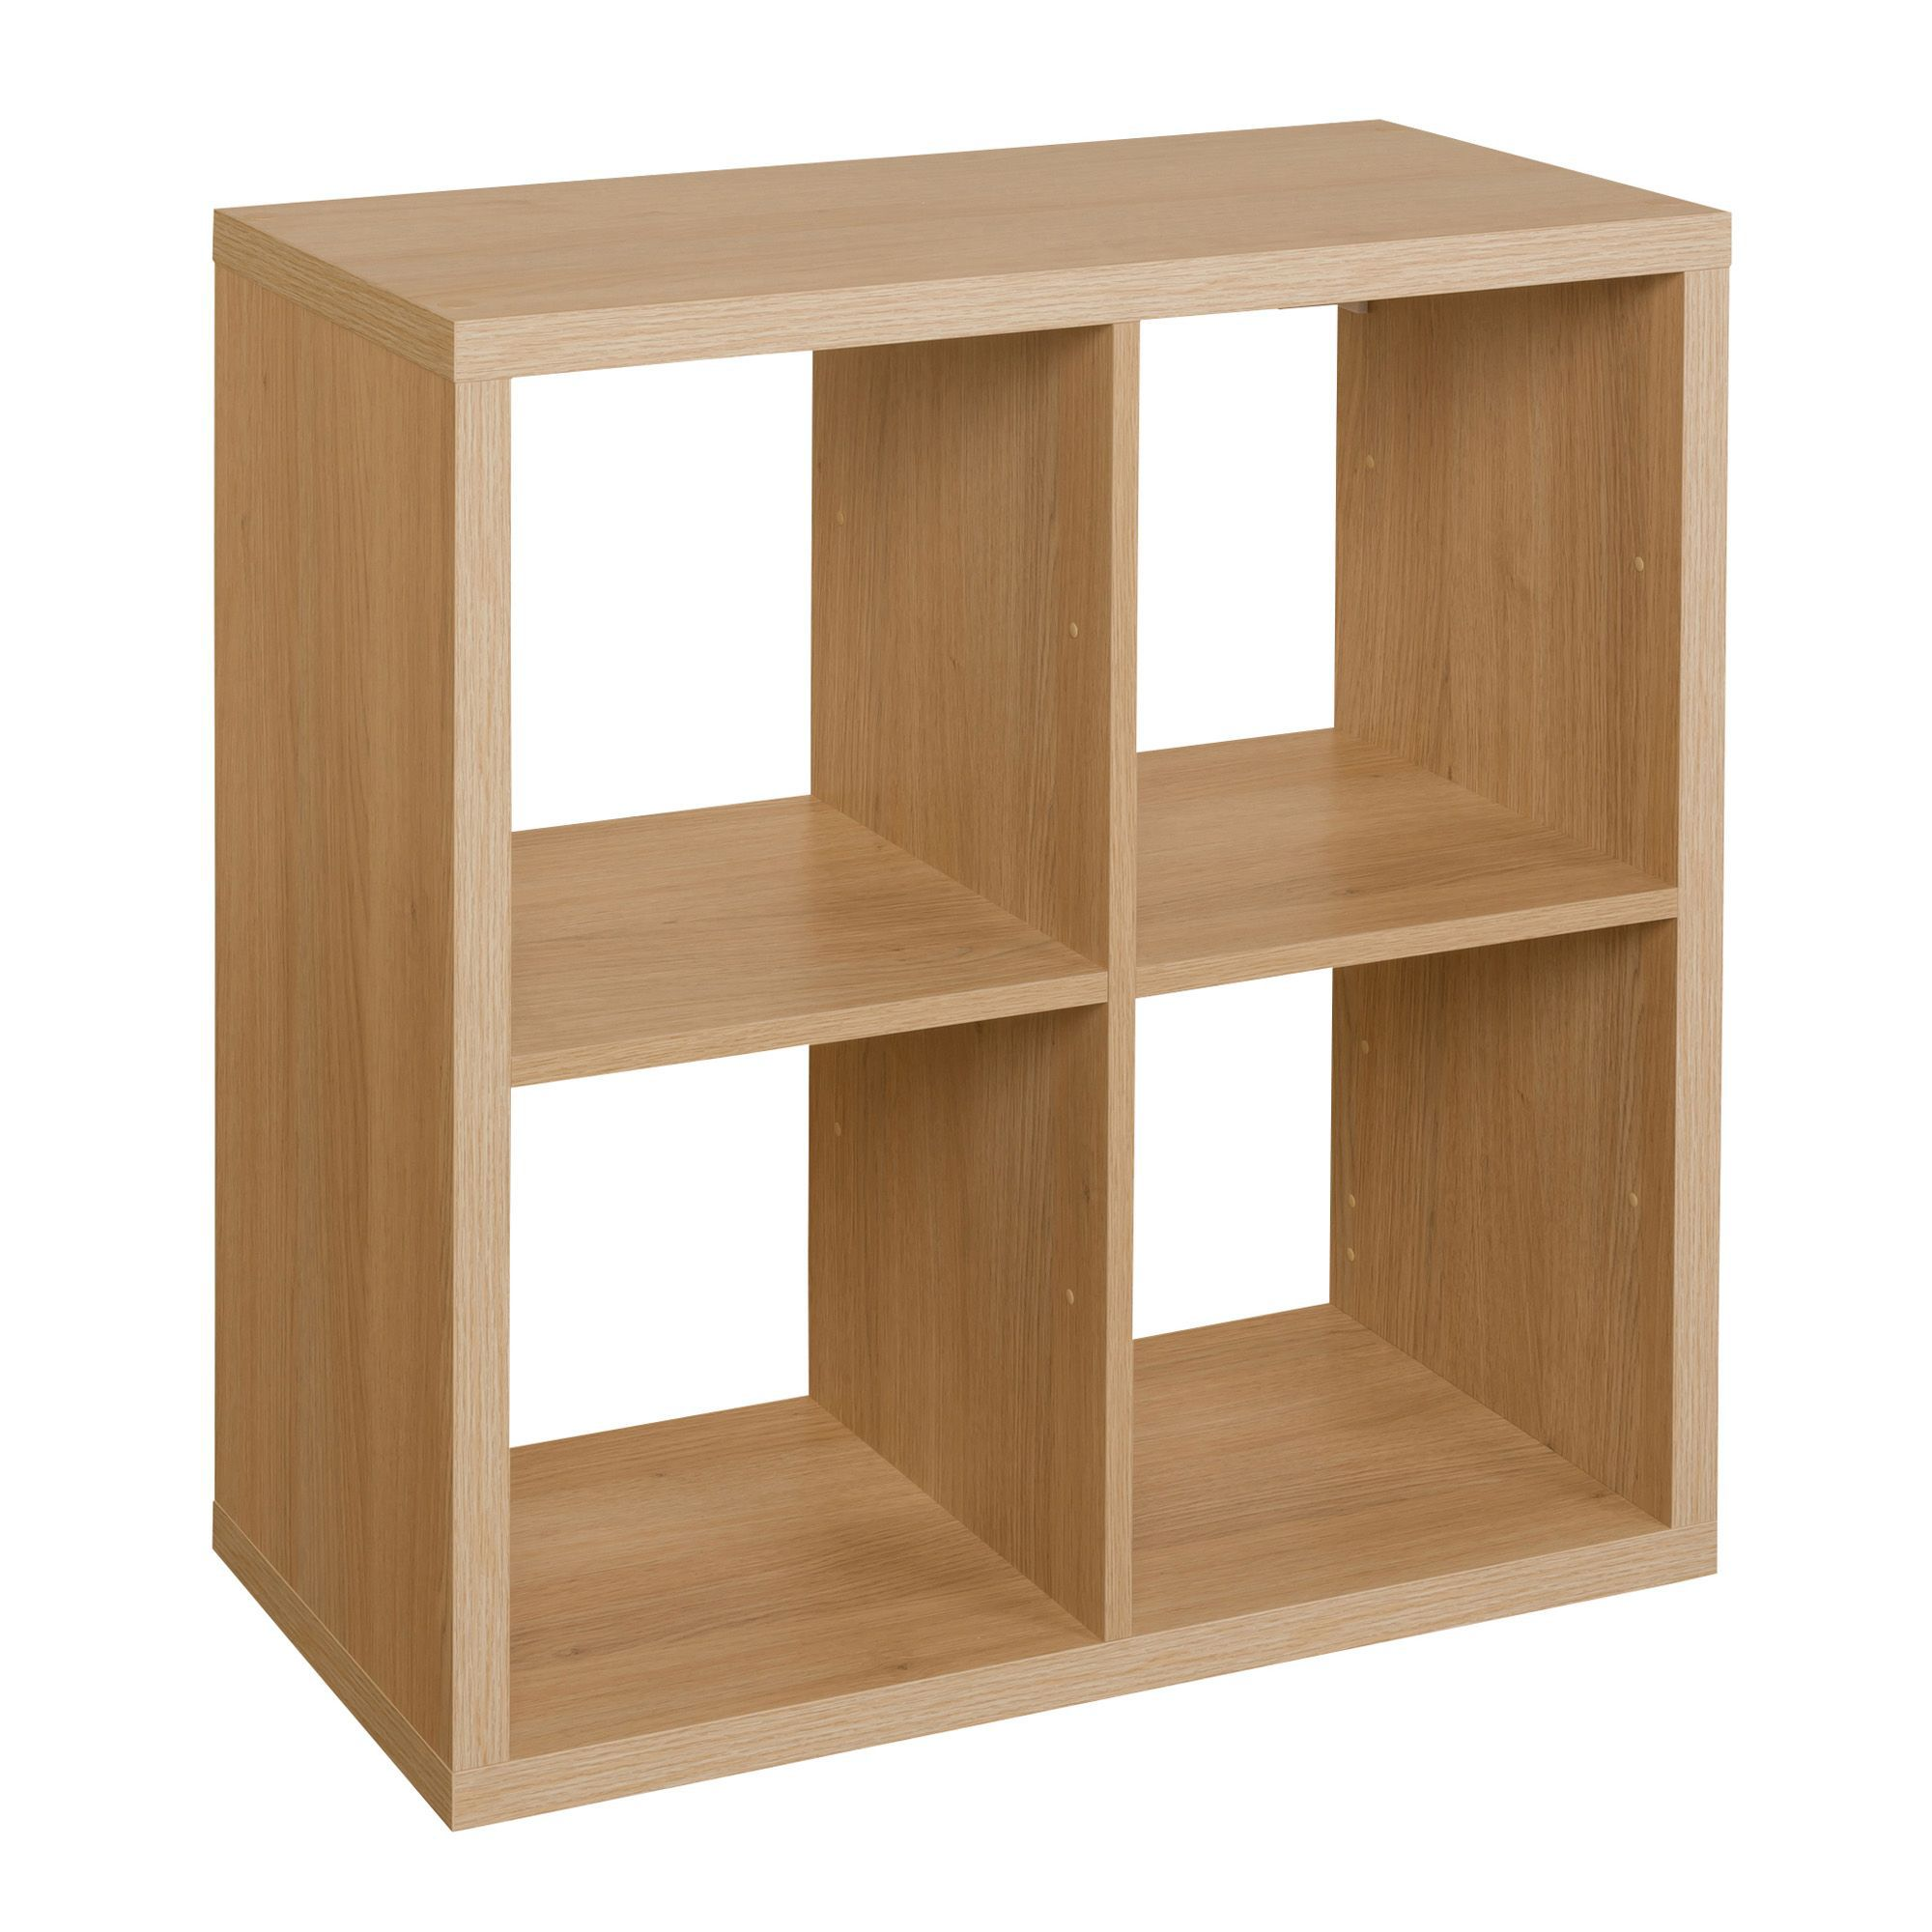 cubes cube shelving asp p shelf set solid floating oak